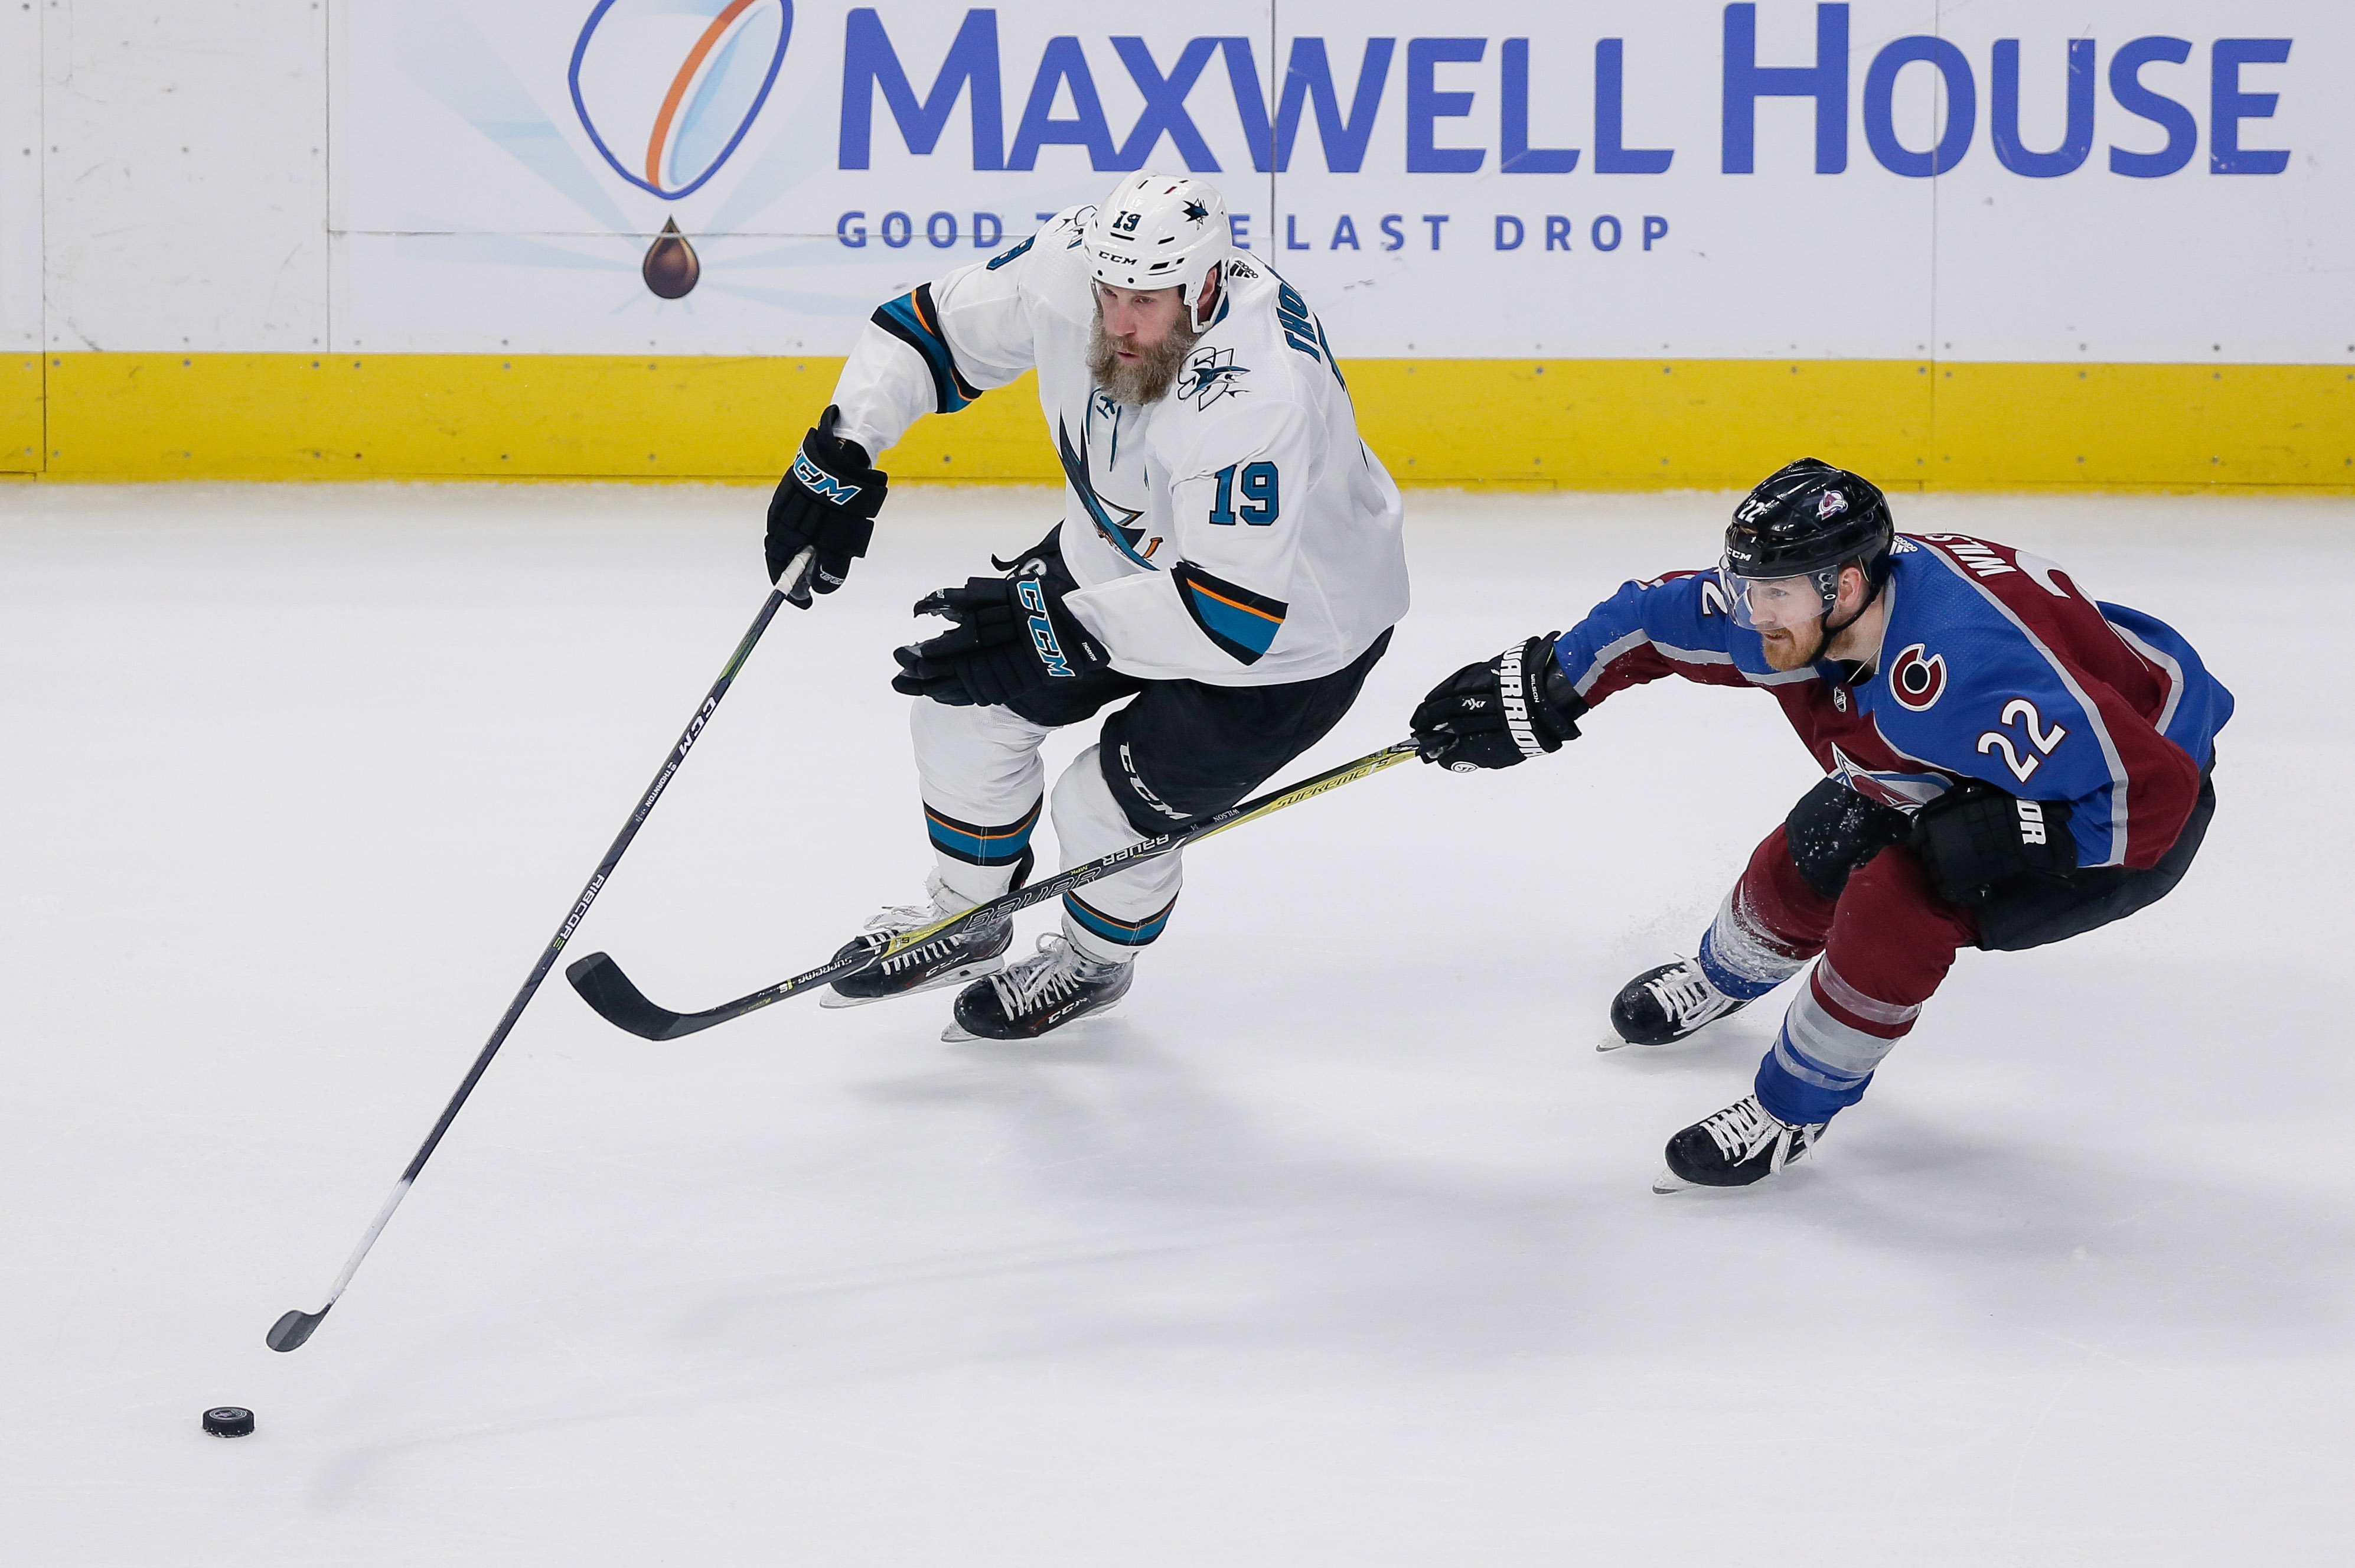 May 6, 2019; Denver, CO, USA; San Jose Sharks center Joe Thornton (19) controls the puck as Colorado Avalanche center Colin Wilson (22) defends in the third period in game six of the second round of the 2019 Stanley Cup Playoffs at the Pepsi Center.